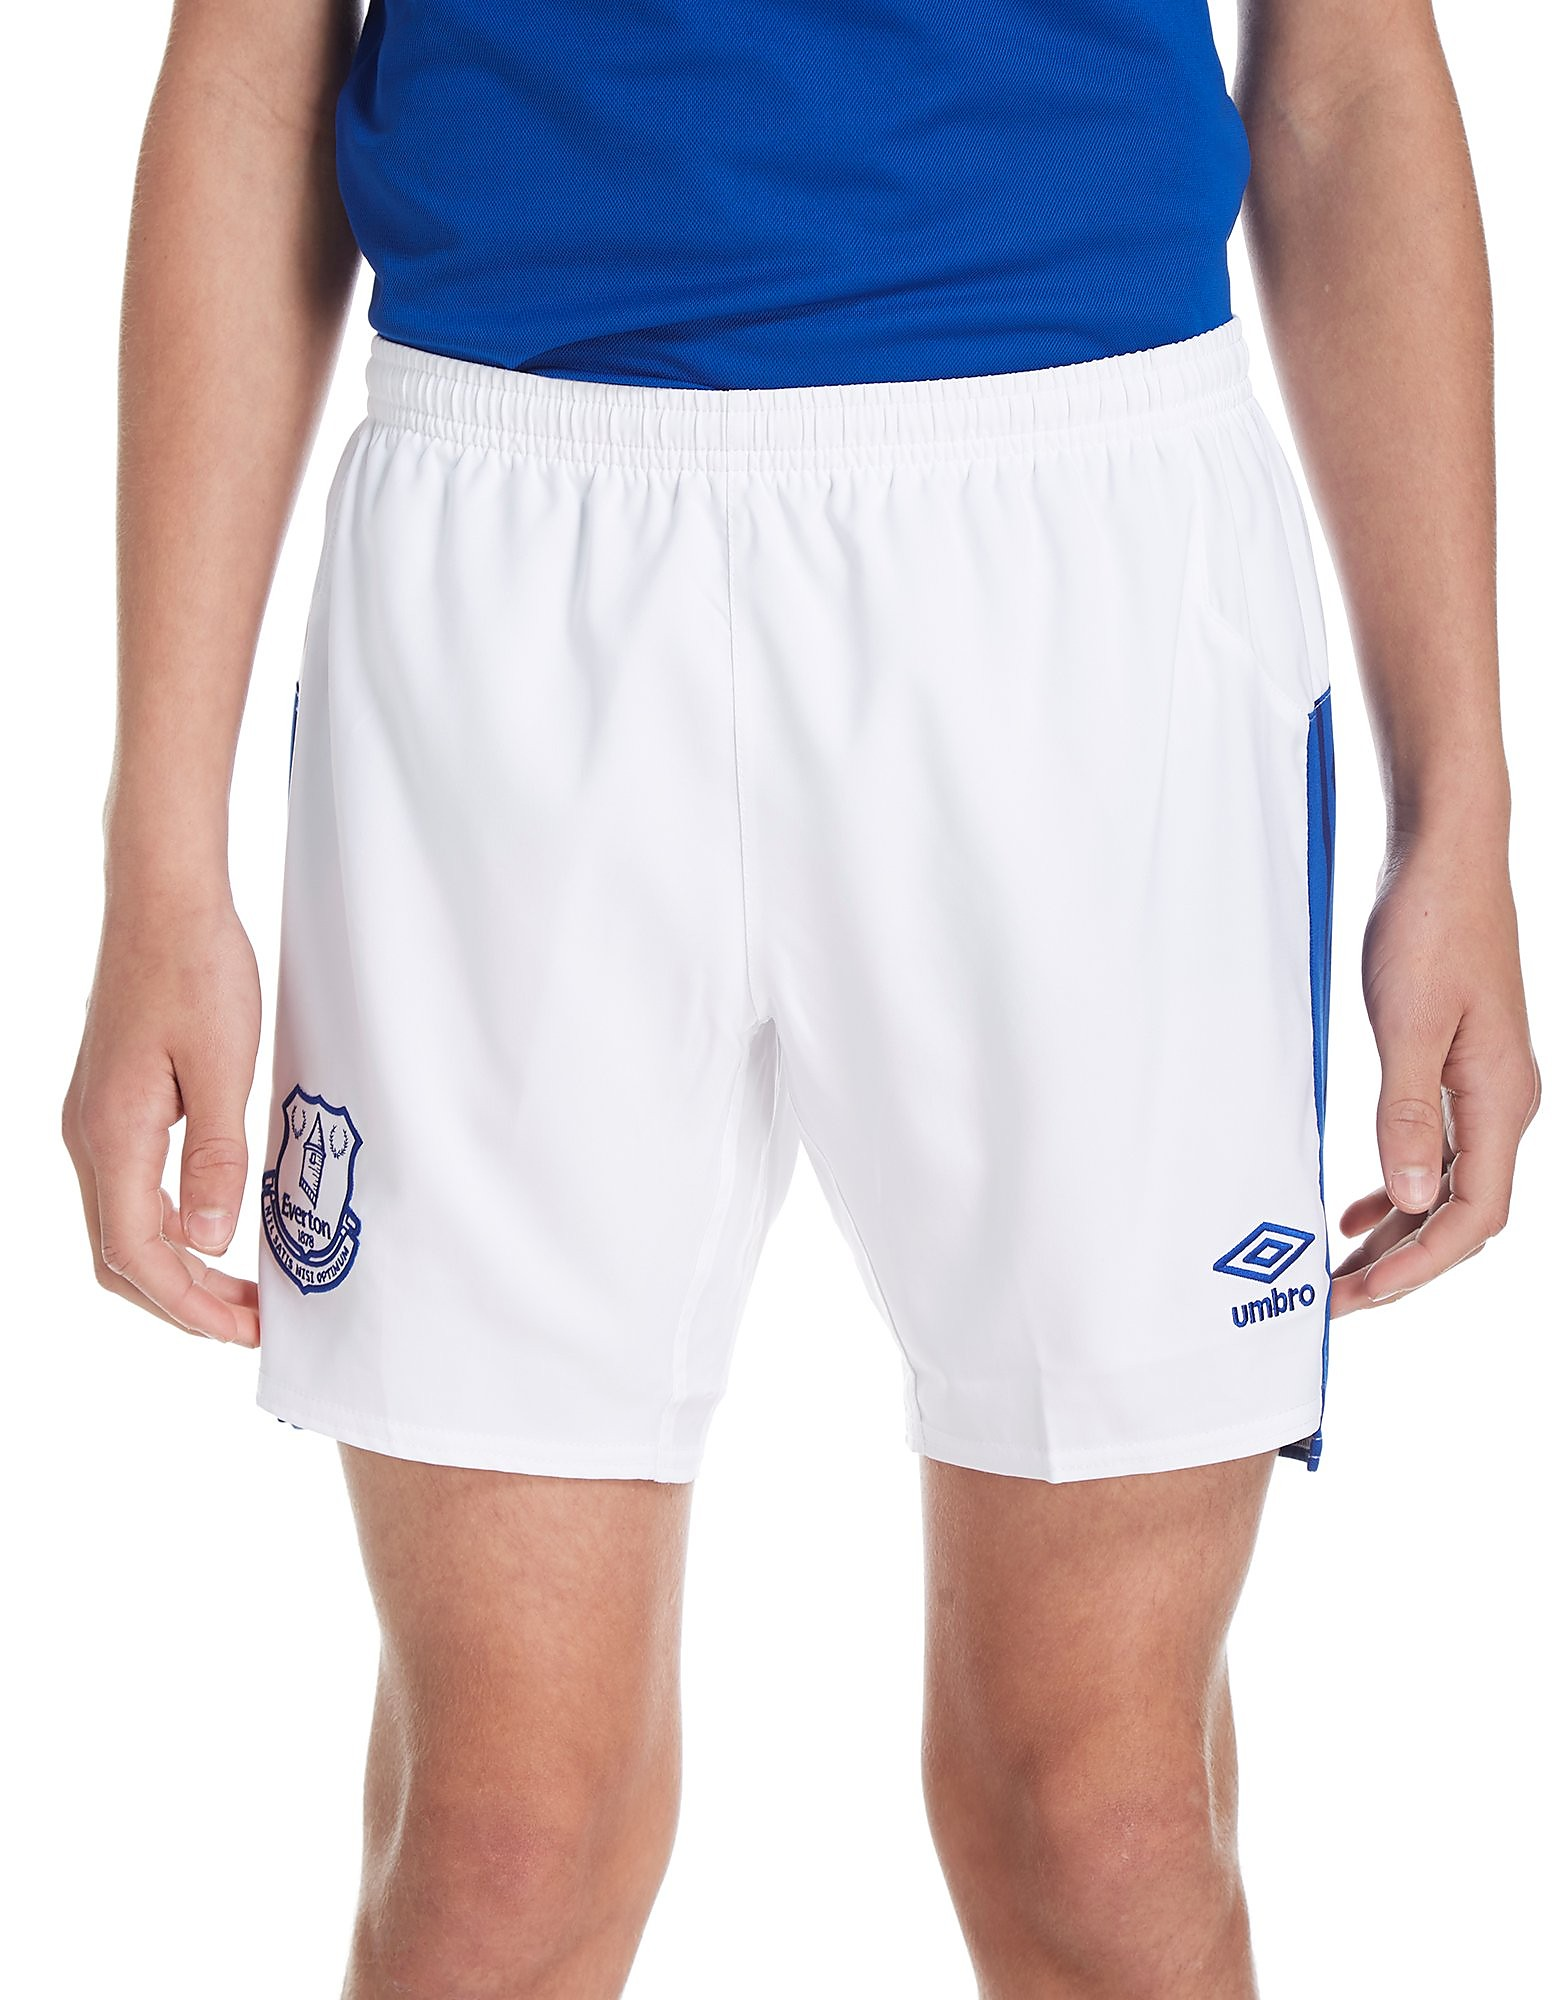 Umbro Everton FC 2017/18 Home Shorts Junior